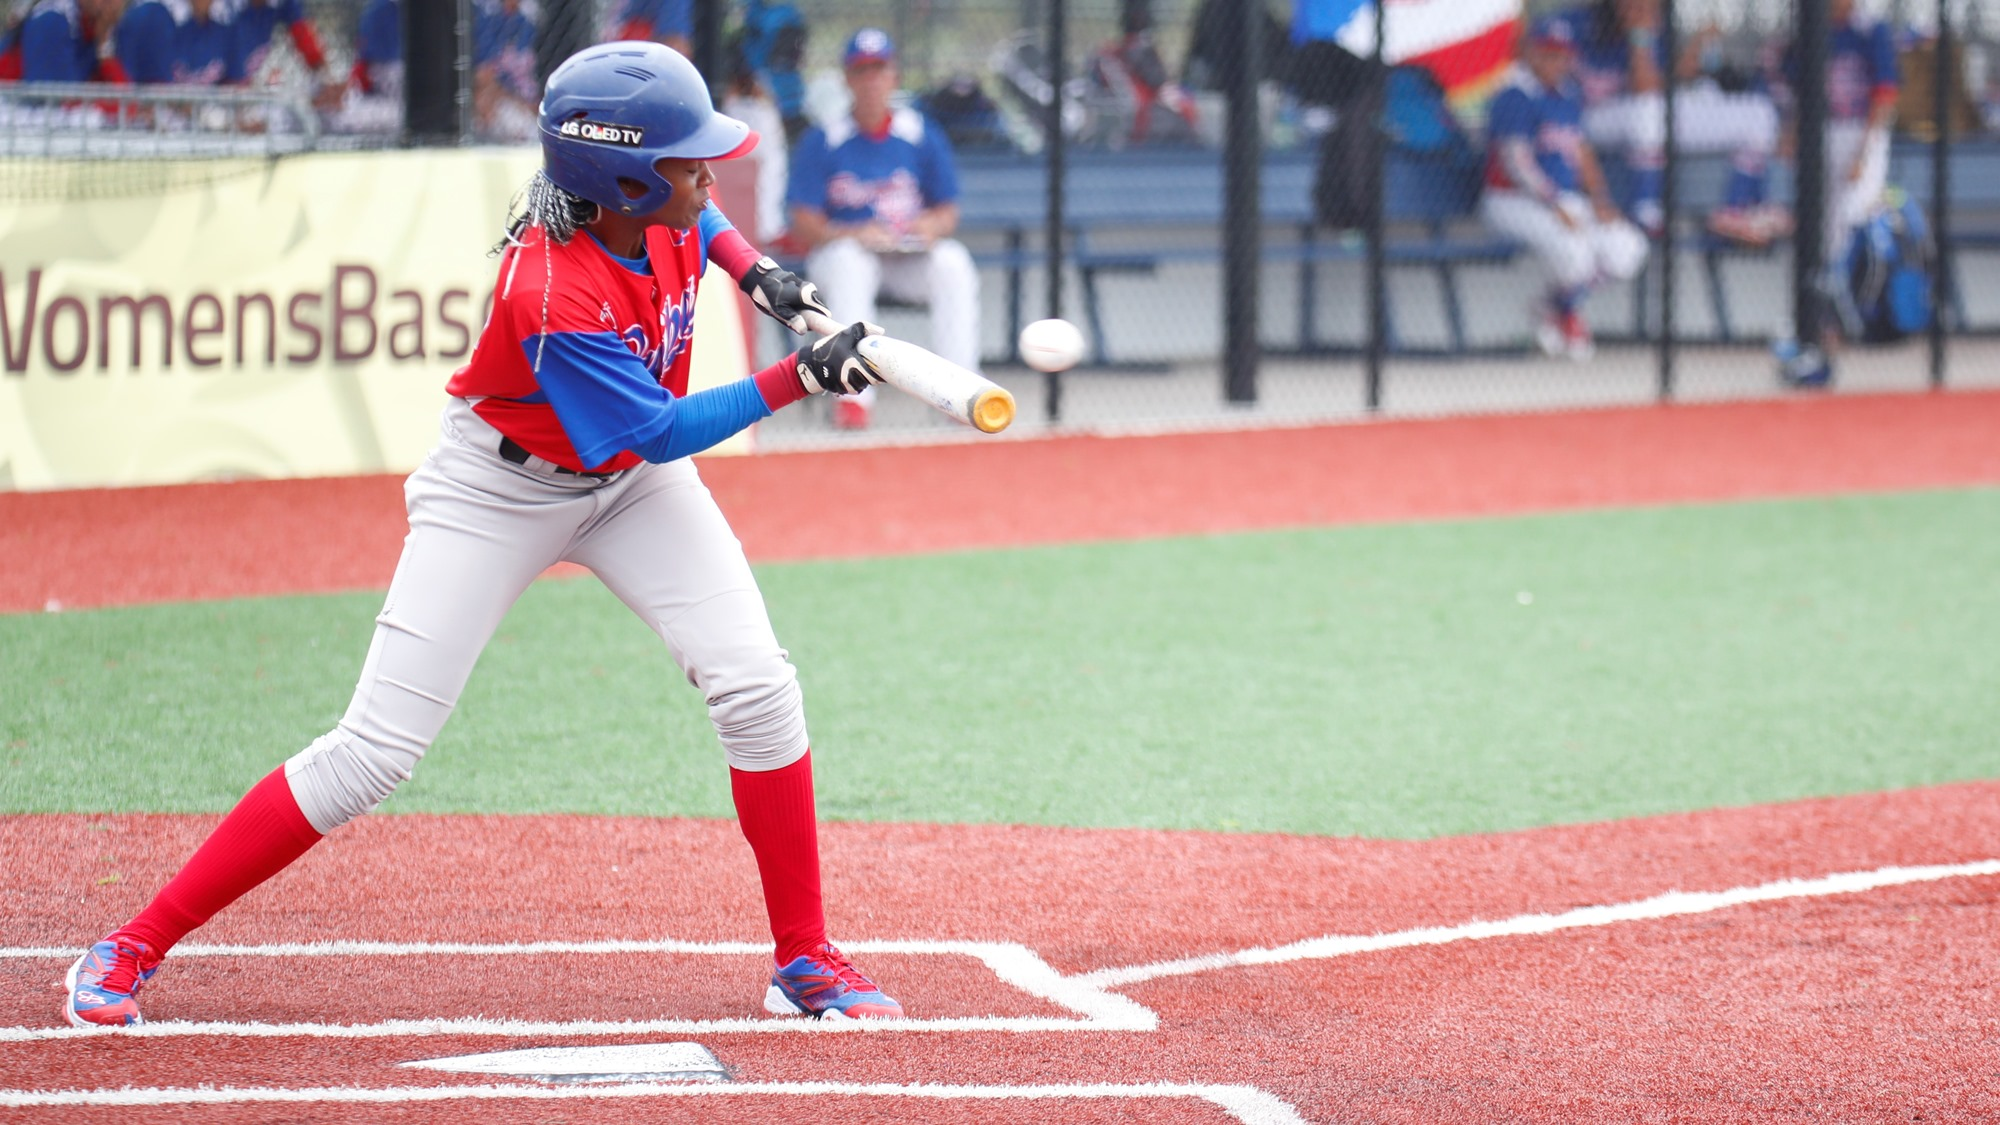 Cuba made the most of six hits and played perfect defense